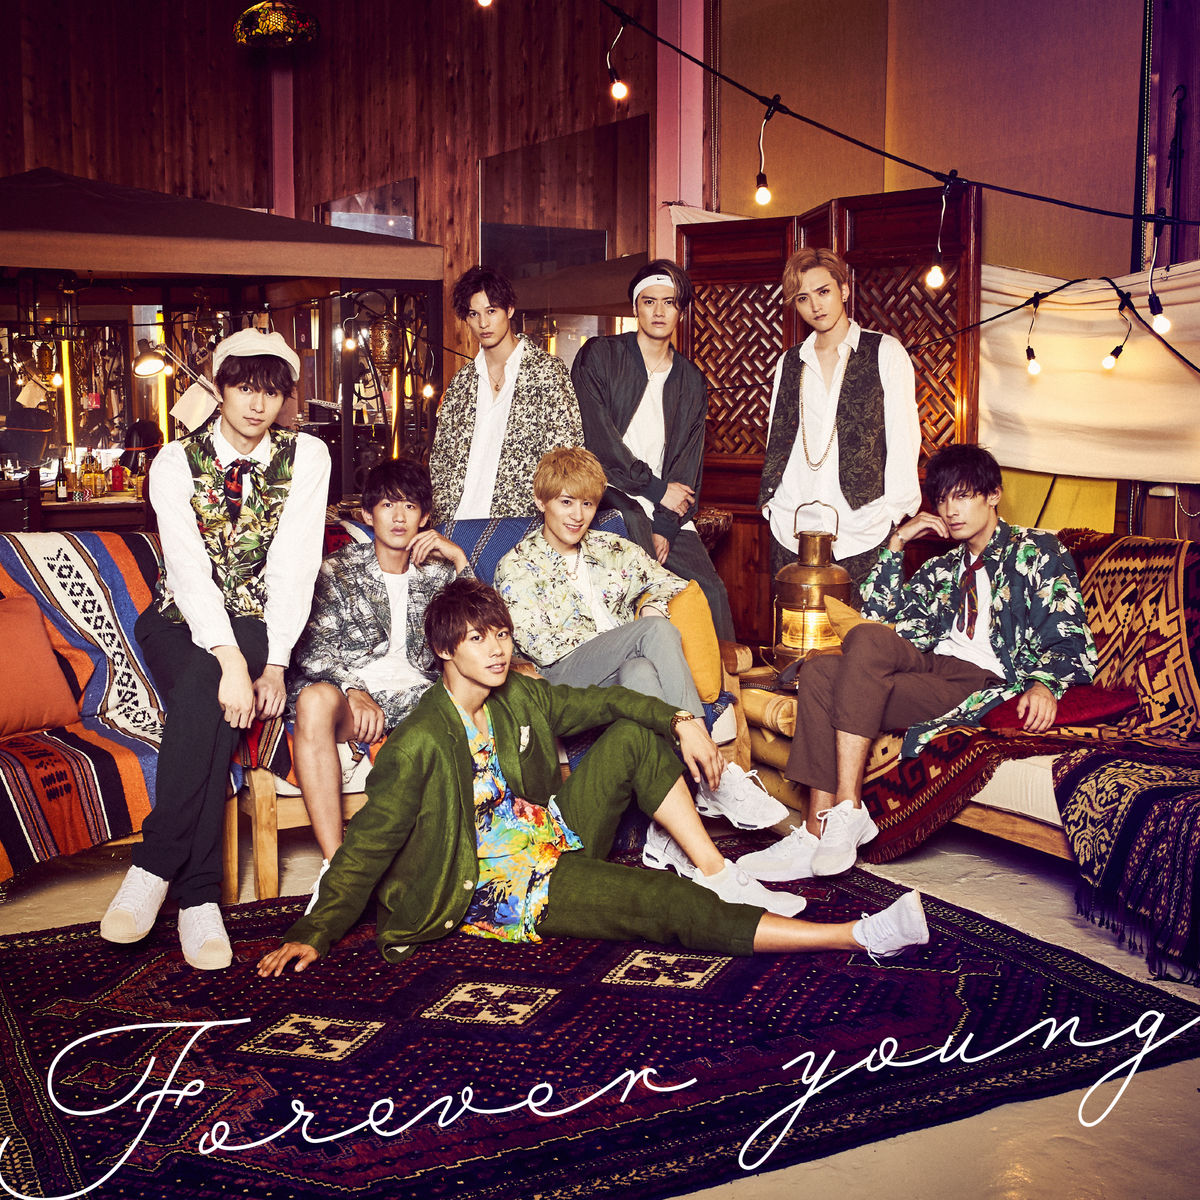 『SOLIDEMO - Forever young』収録の『Forever young』ジャケット